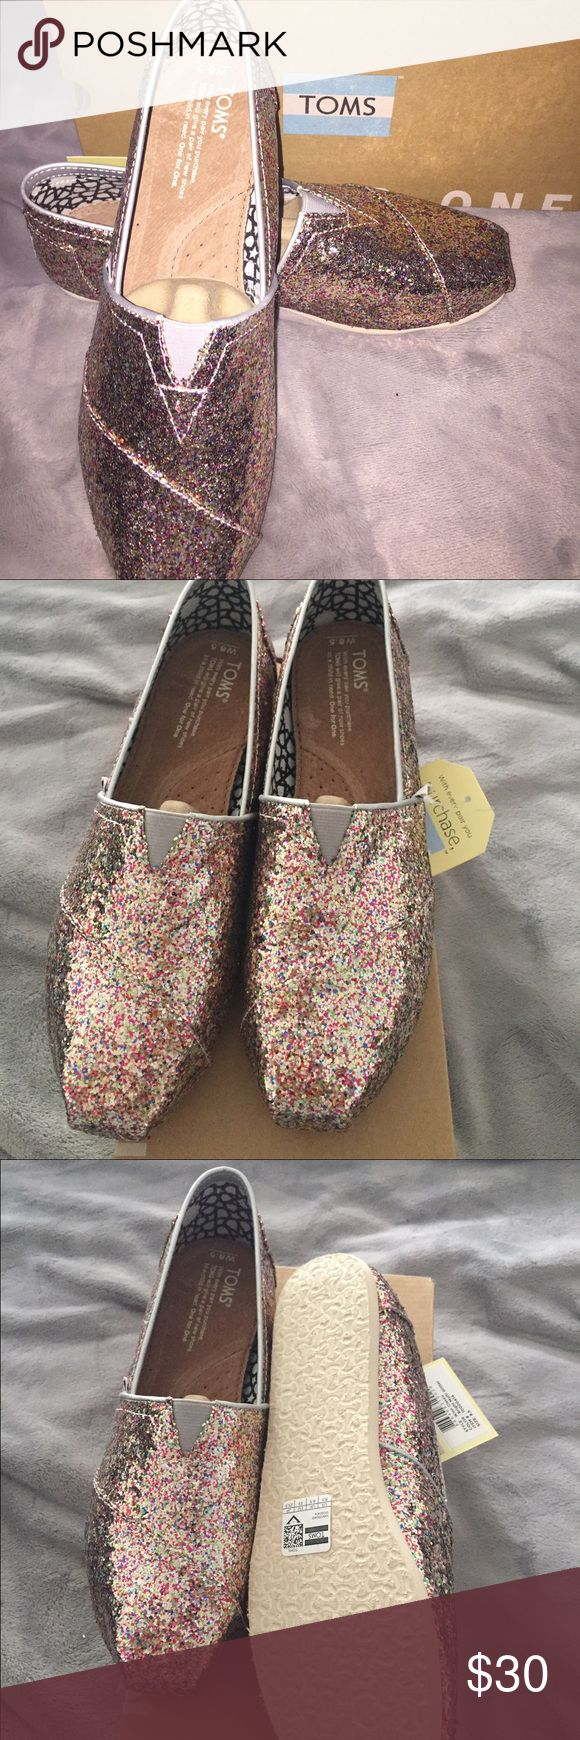 Toms Classic multi glitter slip-on BRAND NEW!! TOMS Shoes Flats & Loafers